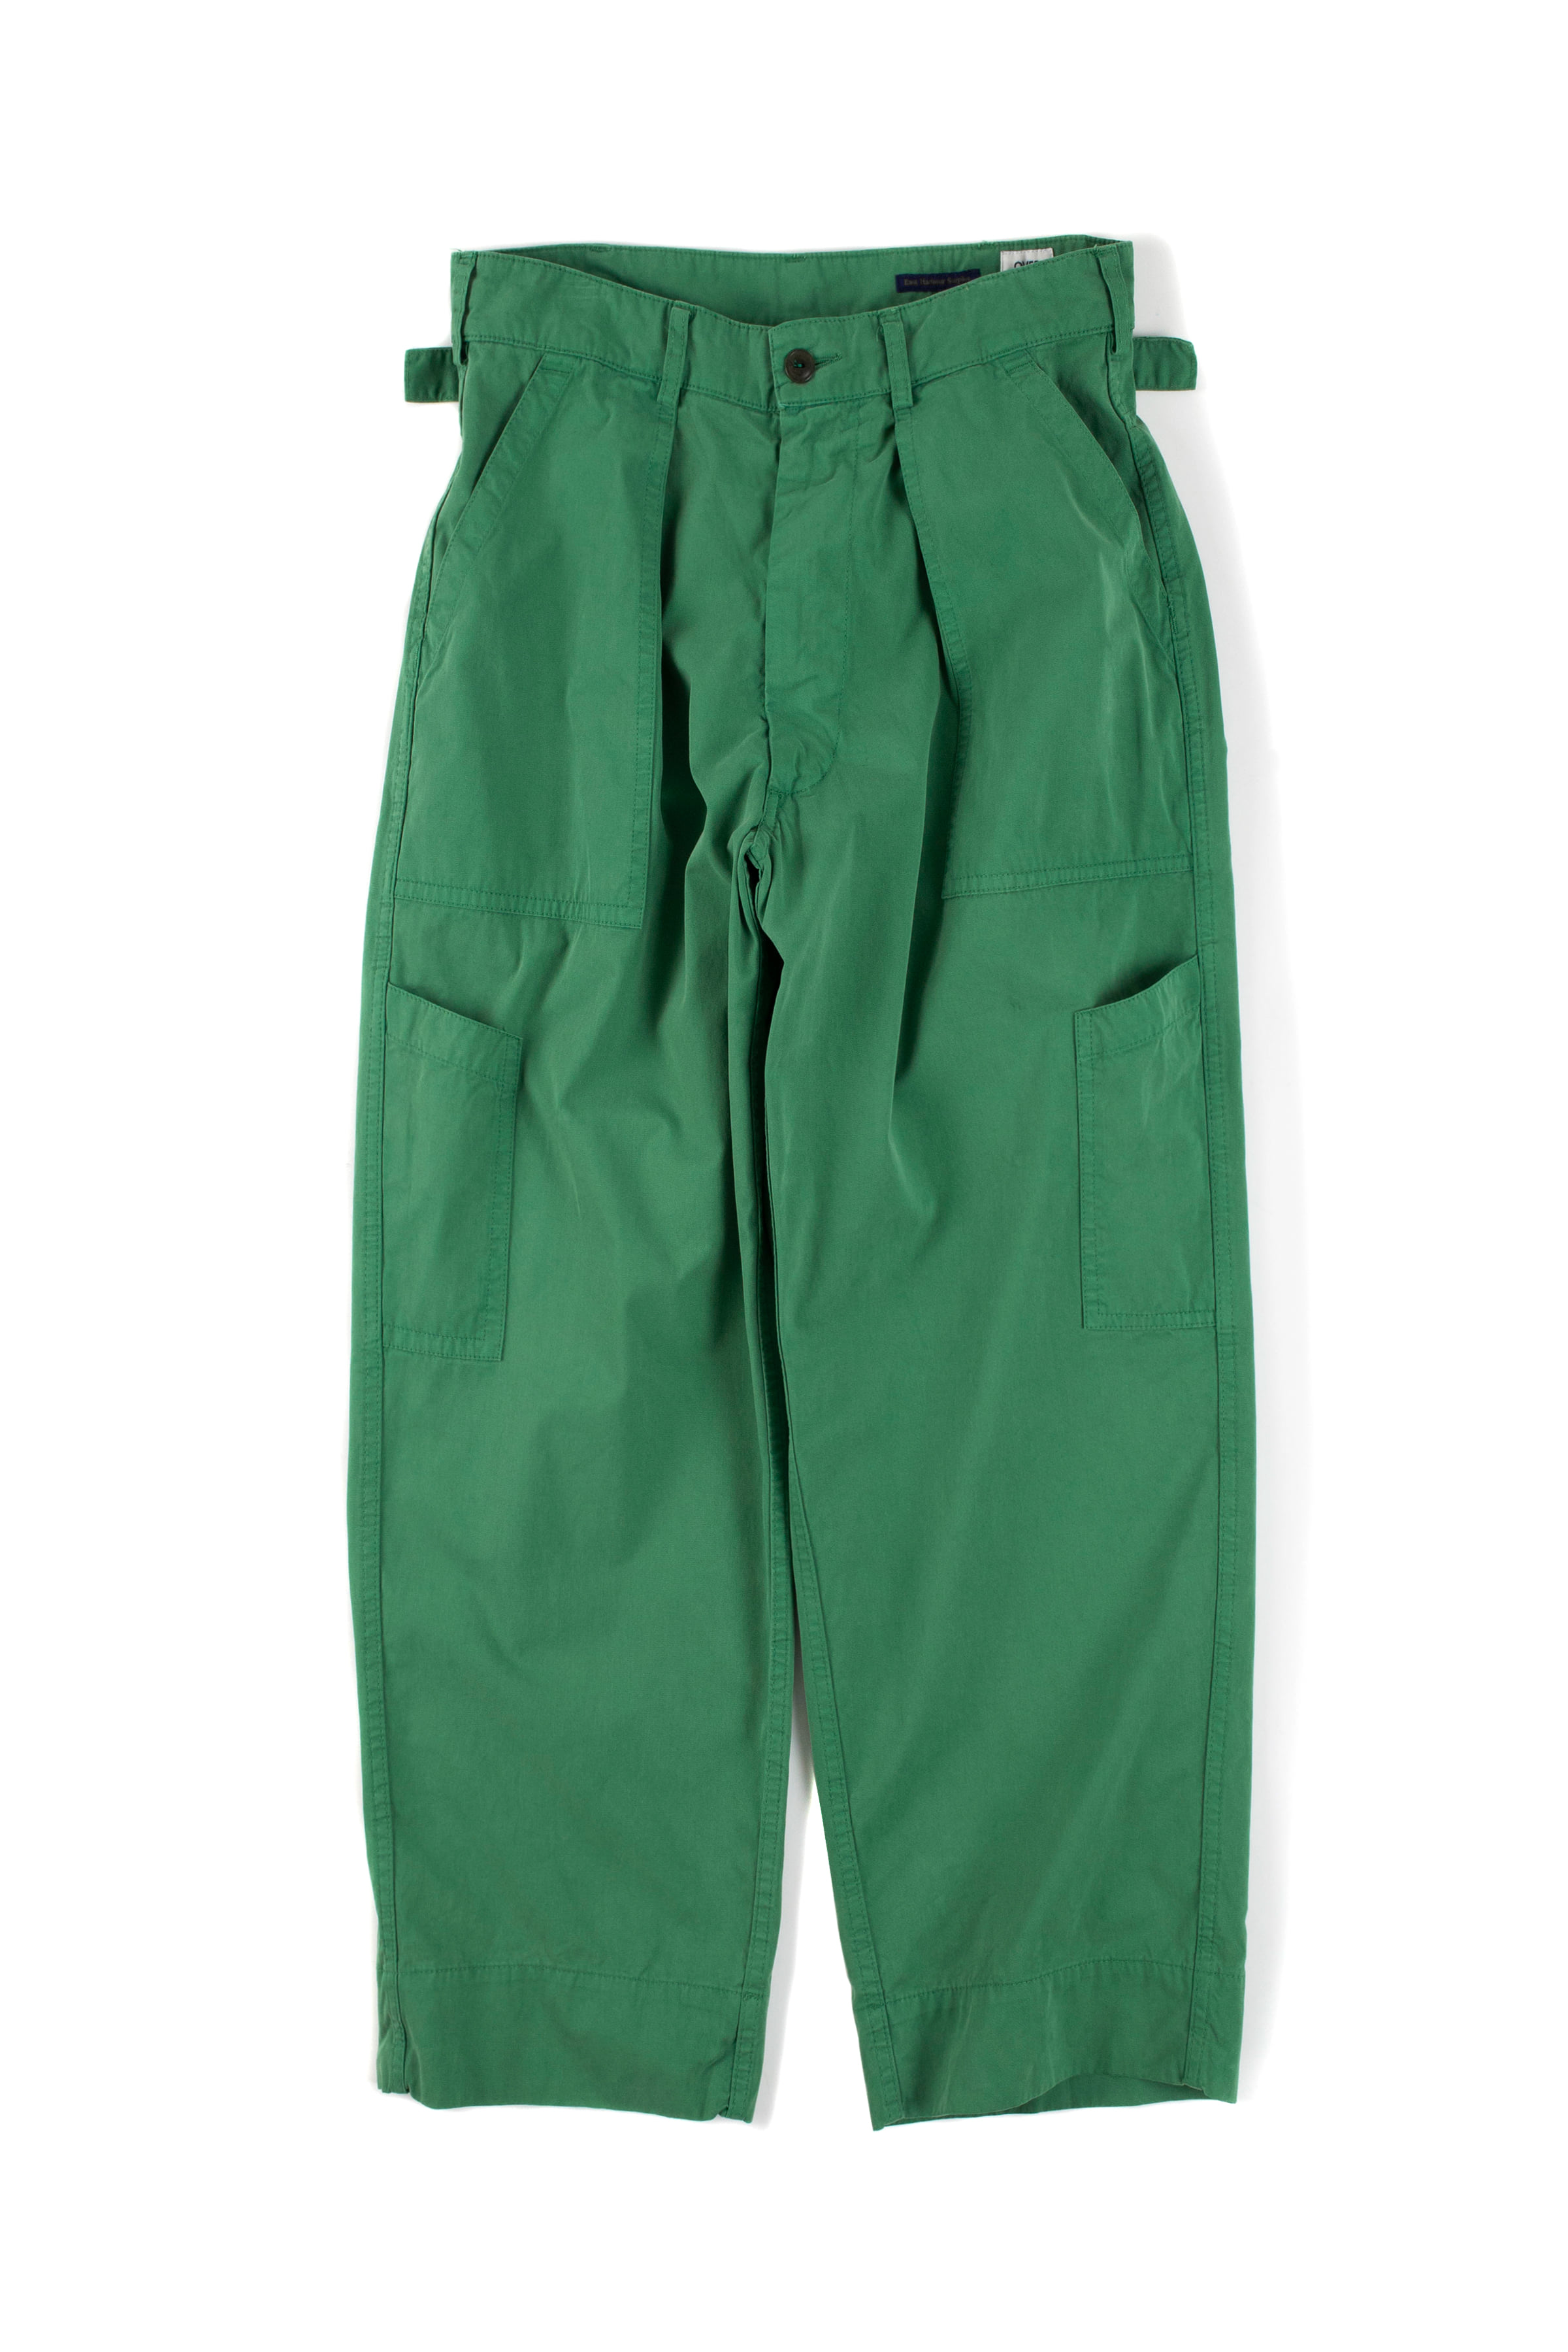 East Harbour Surplus : Fatigue Pants (Green)